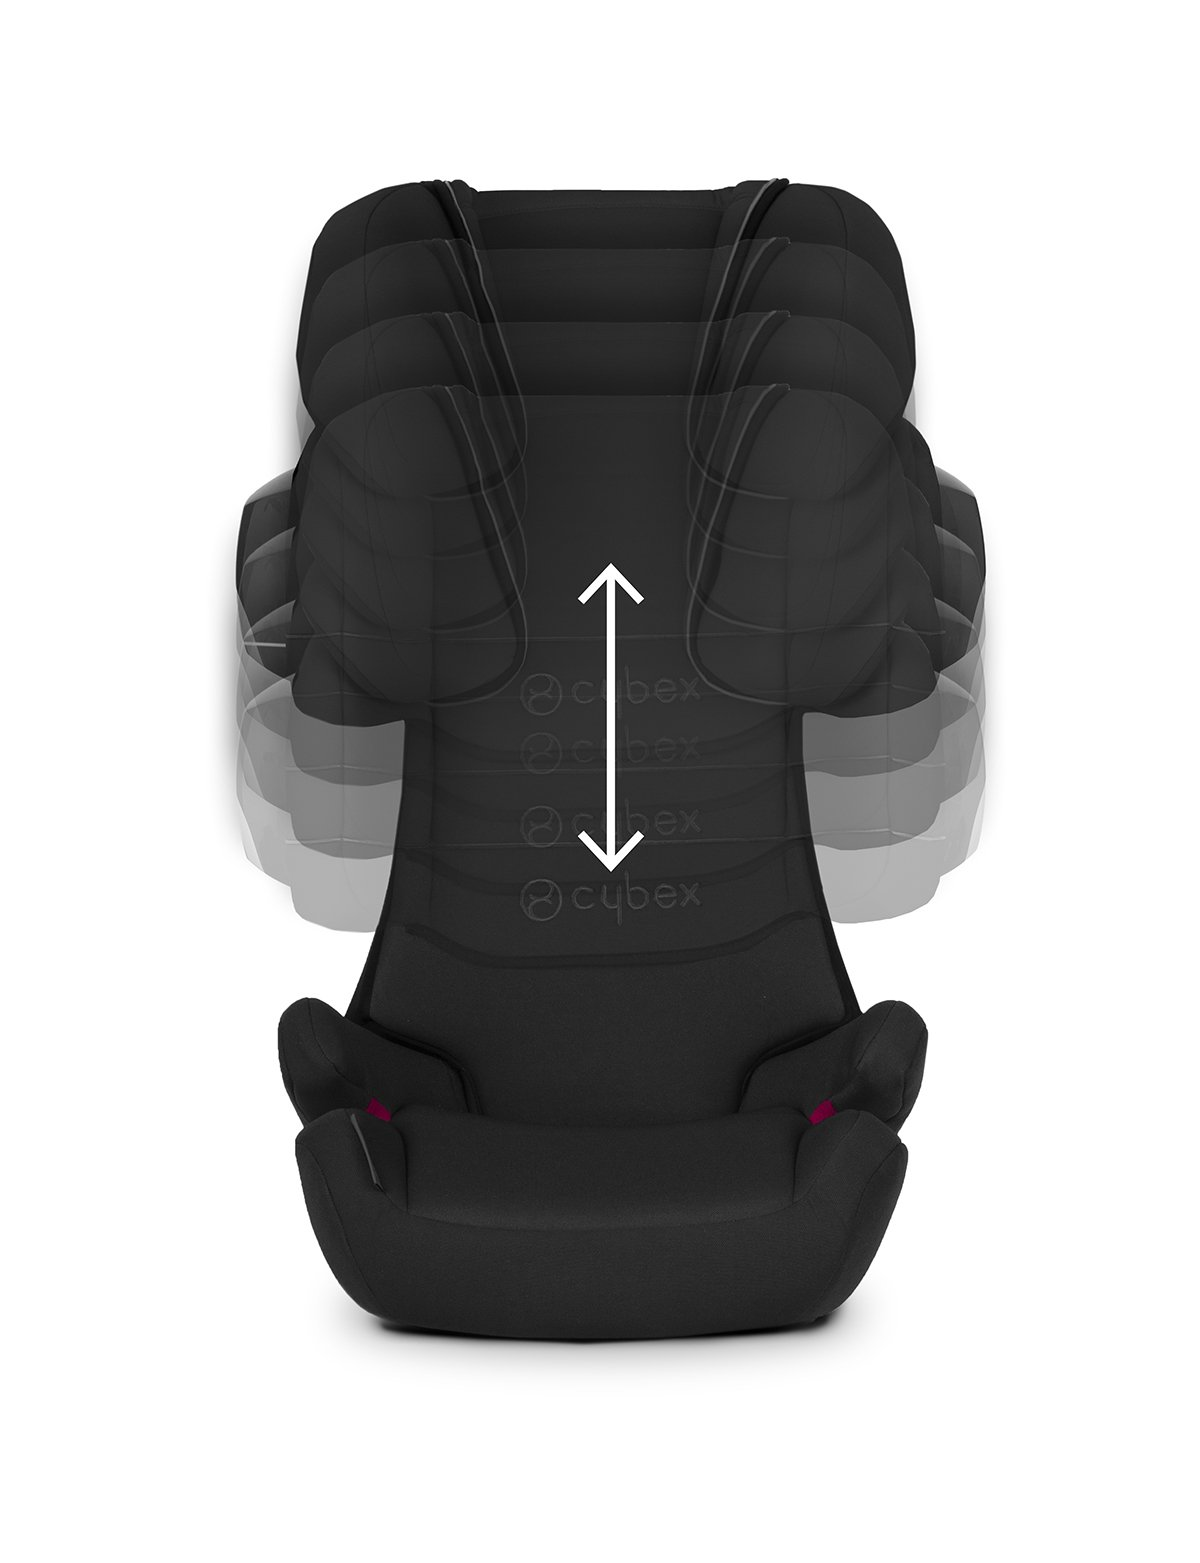 CYBEX Silver Solution X2-Fix Child's Car Seat, For Cars with and without ISOFIX, Group 2/3 (15-36 kg), From approx. 3 to approx. 12 years, Purple Rain Cybex Sturdy and high-quality child car seat for long-term use - For children aged approx. 3 to approx. 12 years (15-36 kg), Suitable for cars with and without ISOFIX Maximum safety - 3-way adjustable reclining headrest, Built-in side impact protection (L.S.P. System) 11-way adjustable, comfortable headrest, Adjustable backrest, Comfortable seat cushion 2